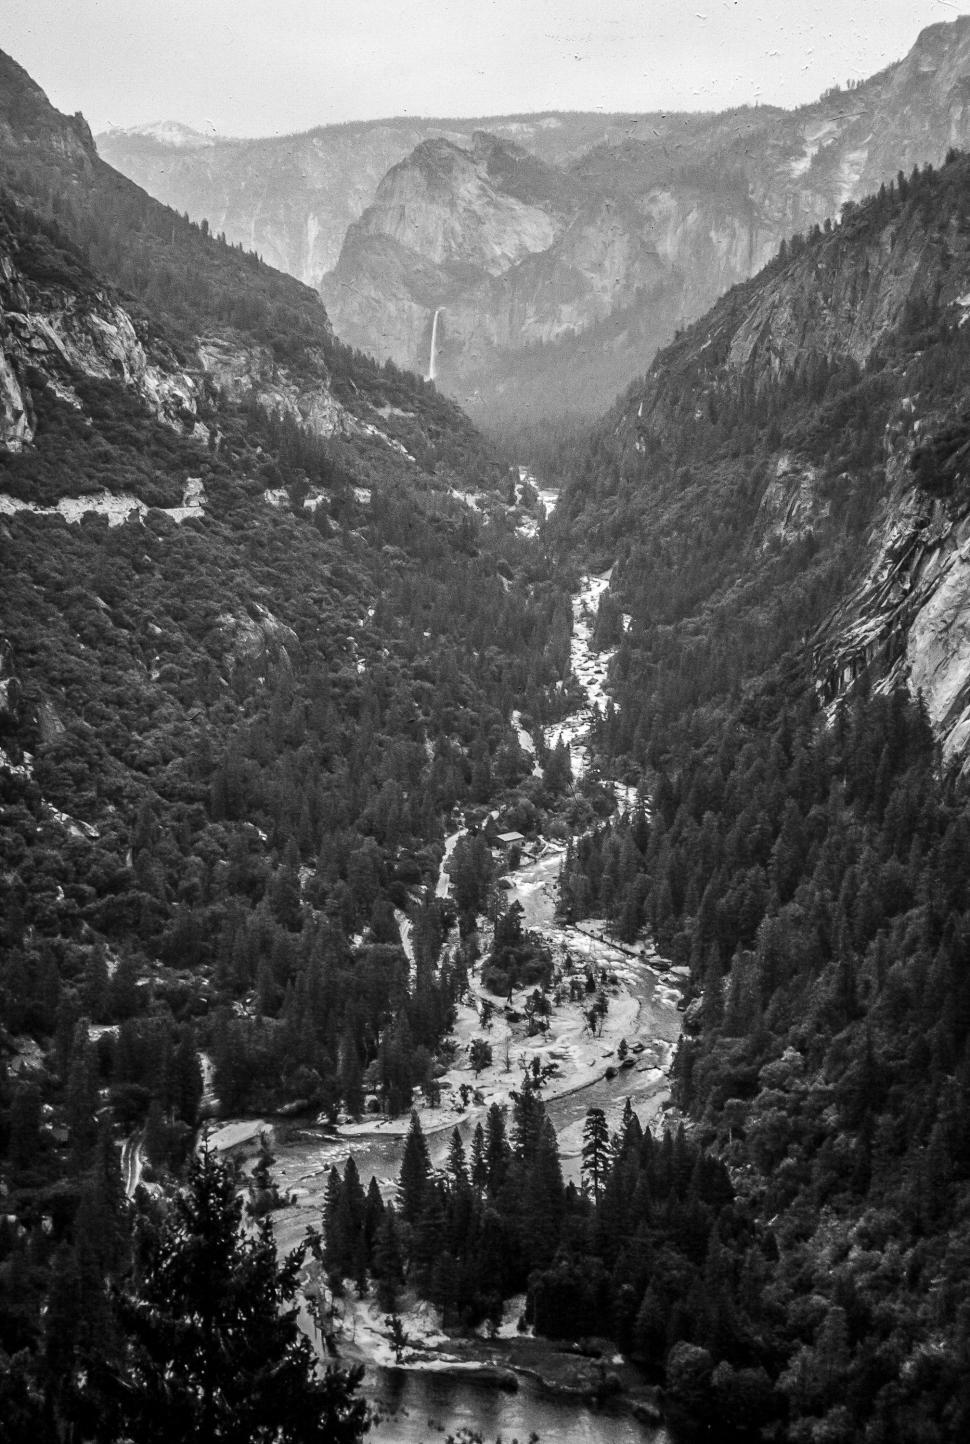 Download Free Stock HD Photo of Aerial View of Yosemite Falls - Black and white Online